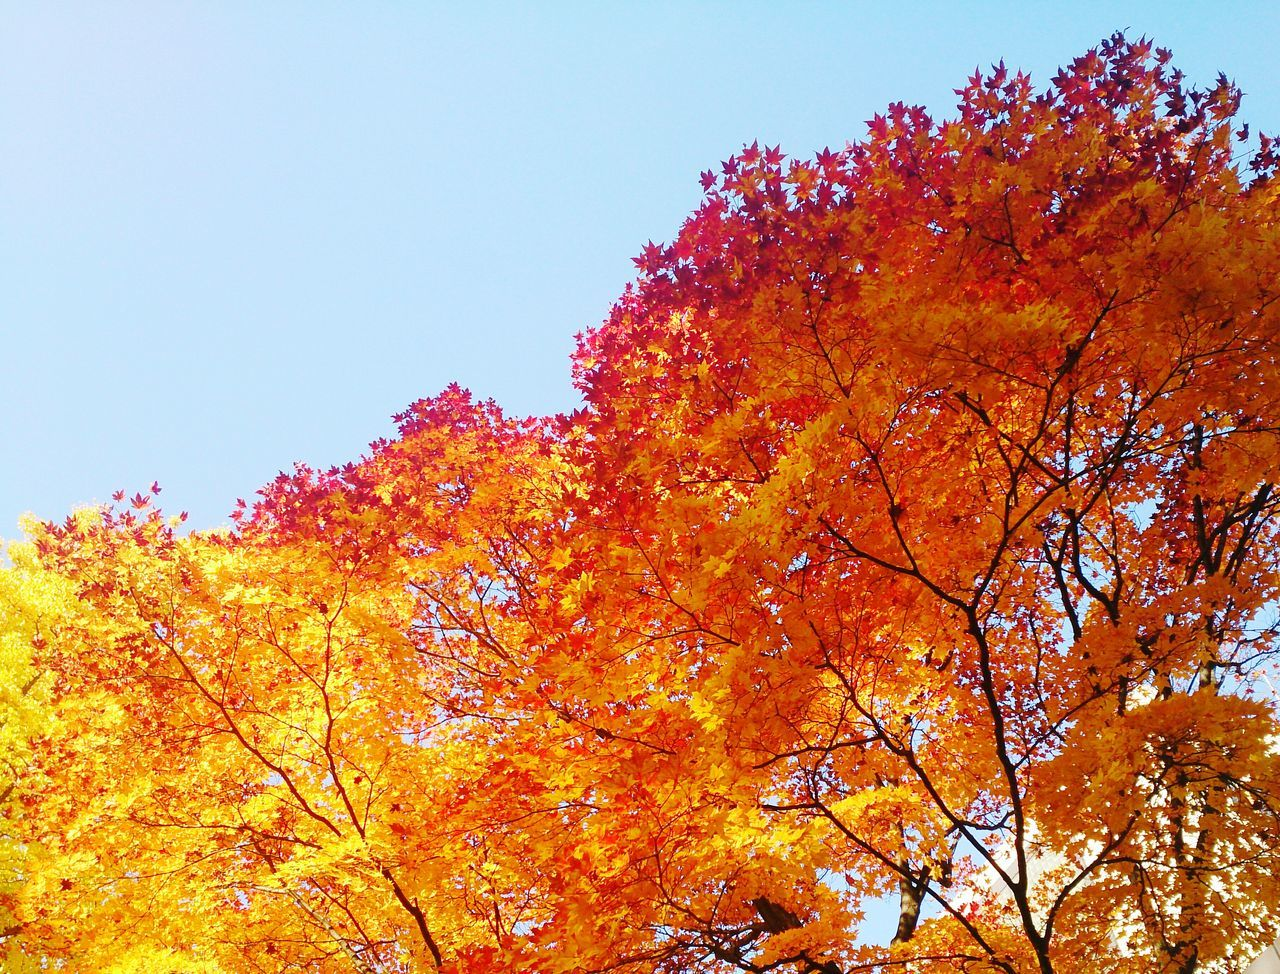 autumn, change, tree, orange color, plant, low angle view, beauty in nature, sky, nature, growth, branch, day, no people, clear sky, yellow, tranquility, outdoors, leaf, plant part, scenics - nature, natural condition, fall, autumn collection